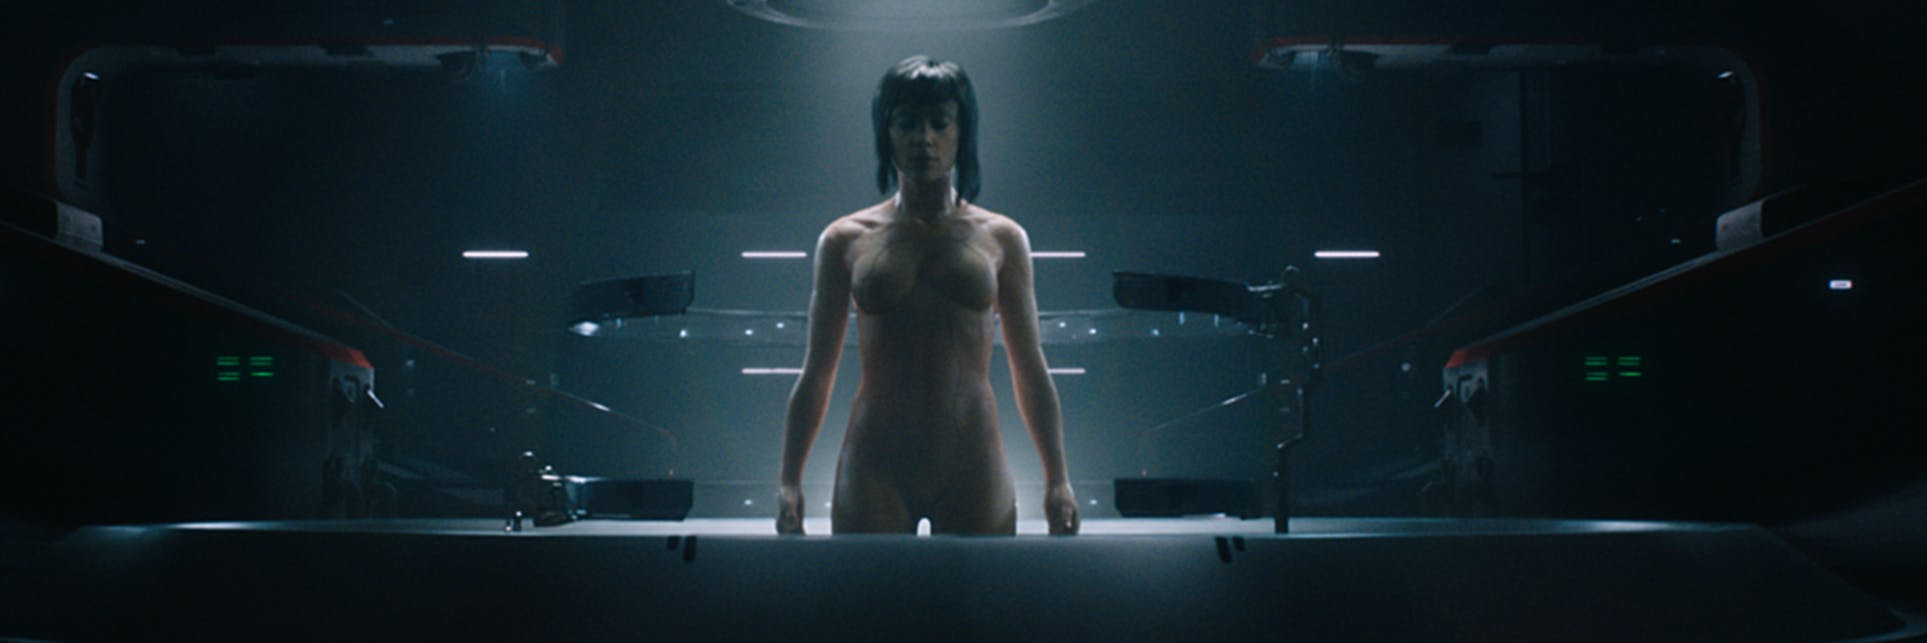 Robo-livers, or synthetic livers, in Ghost In The Shell are on their way to becoming reality.